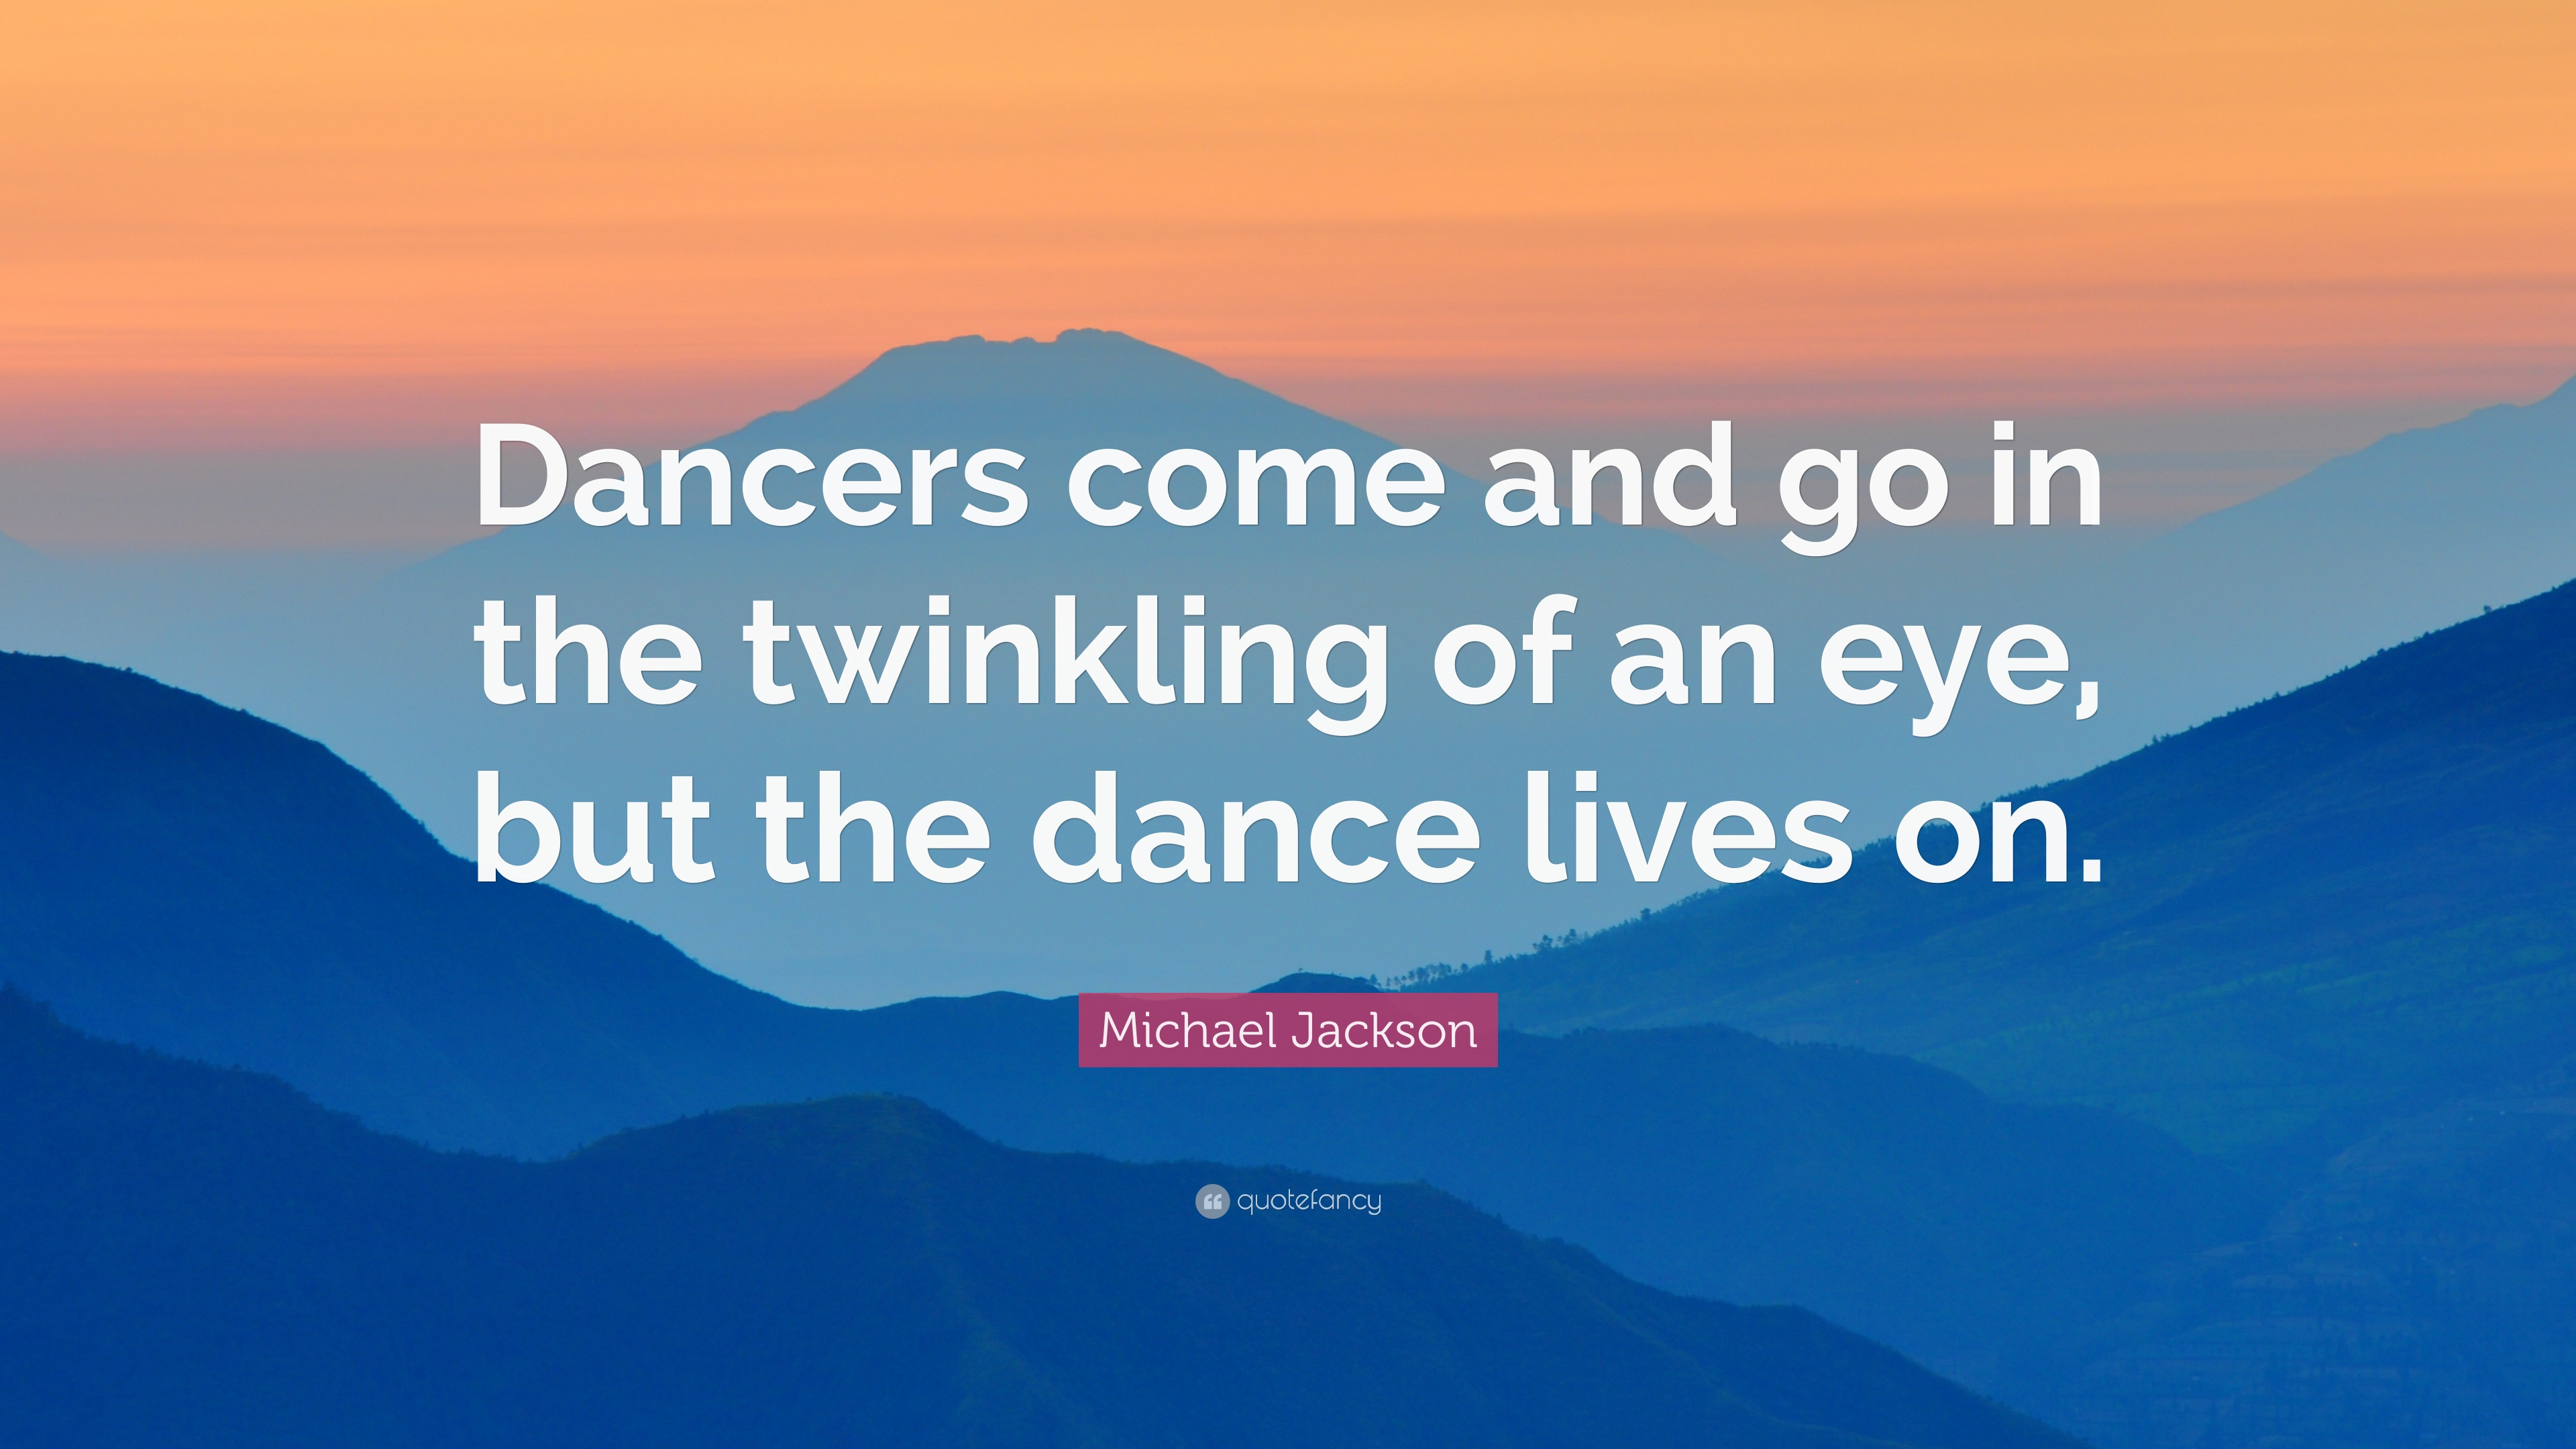 Michael Jackson Quote Dancers Come And Go In The Twinkling Of An Eye But The Dance Lives On 12 Wallpapers Quotefancy